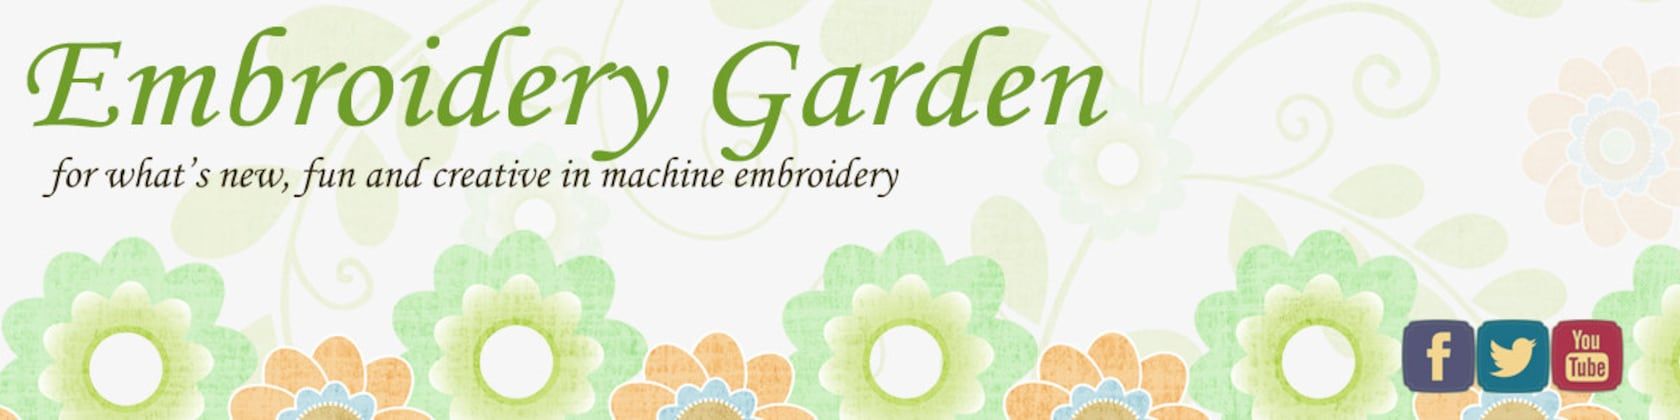 embroiderygarden - Embroidery Garden